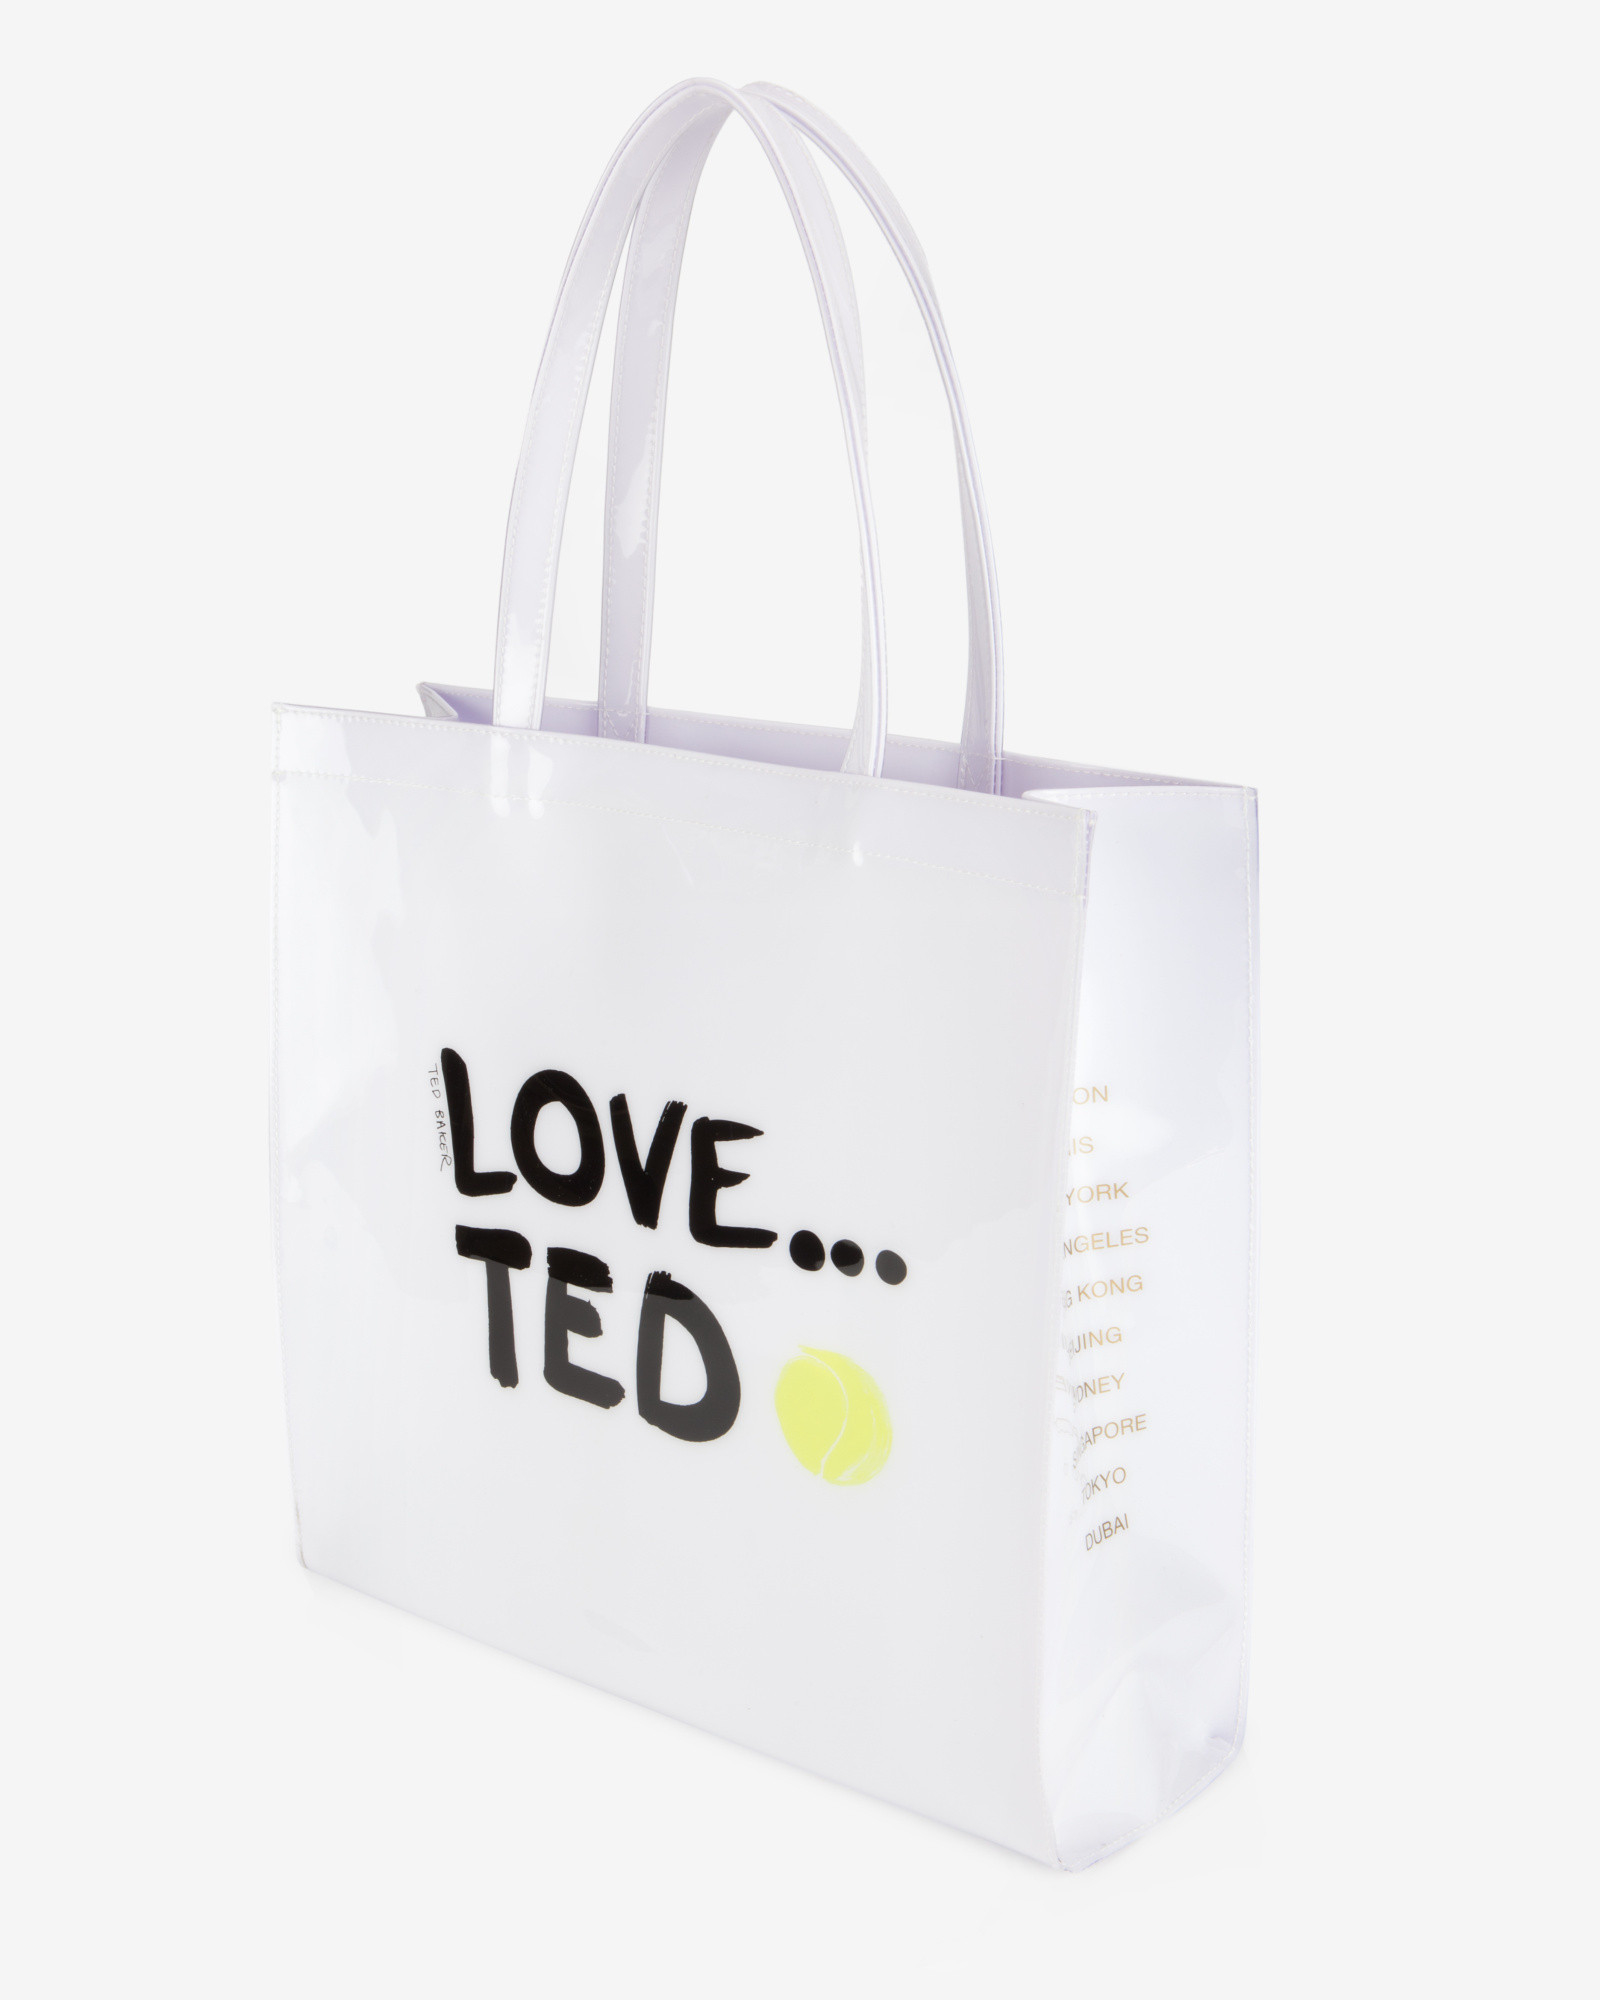 528f1f2f04c7d6 Lyst - Ted Baker Large Love Ted Shopper Bag in White